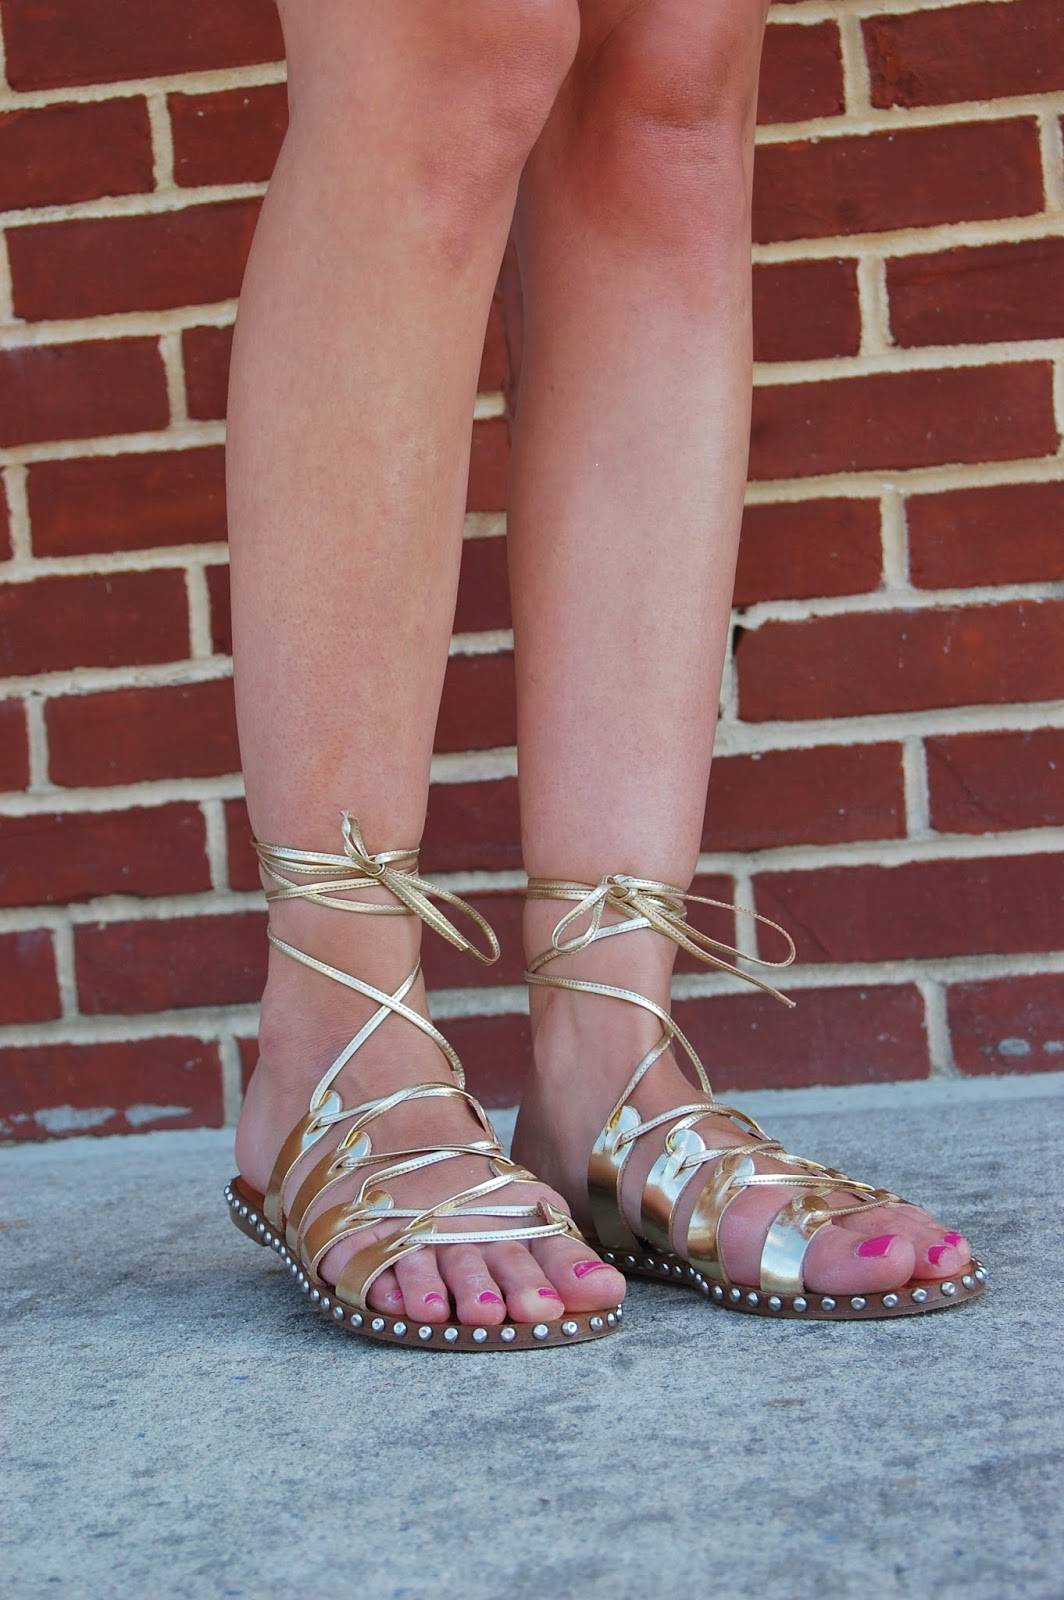 Wearing Jcrew Studded Lace Up Gladiator Sandals, Jcrew summer 2014 new arrivals